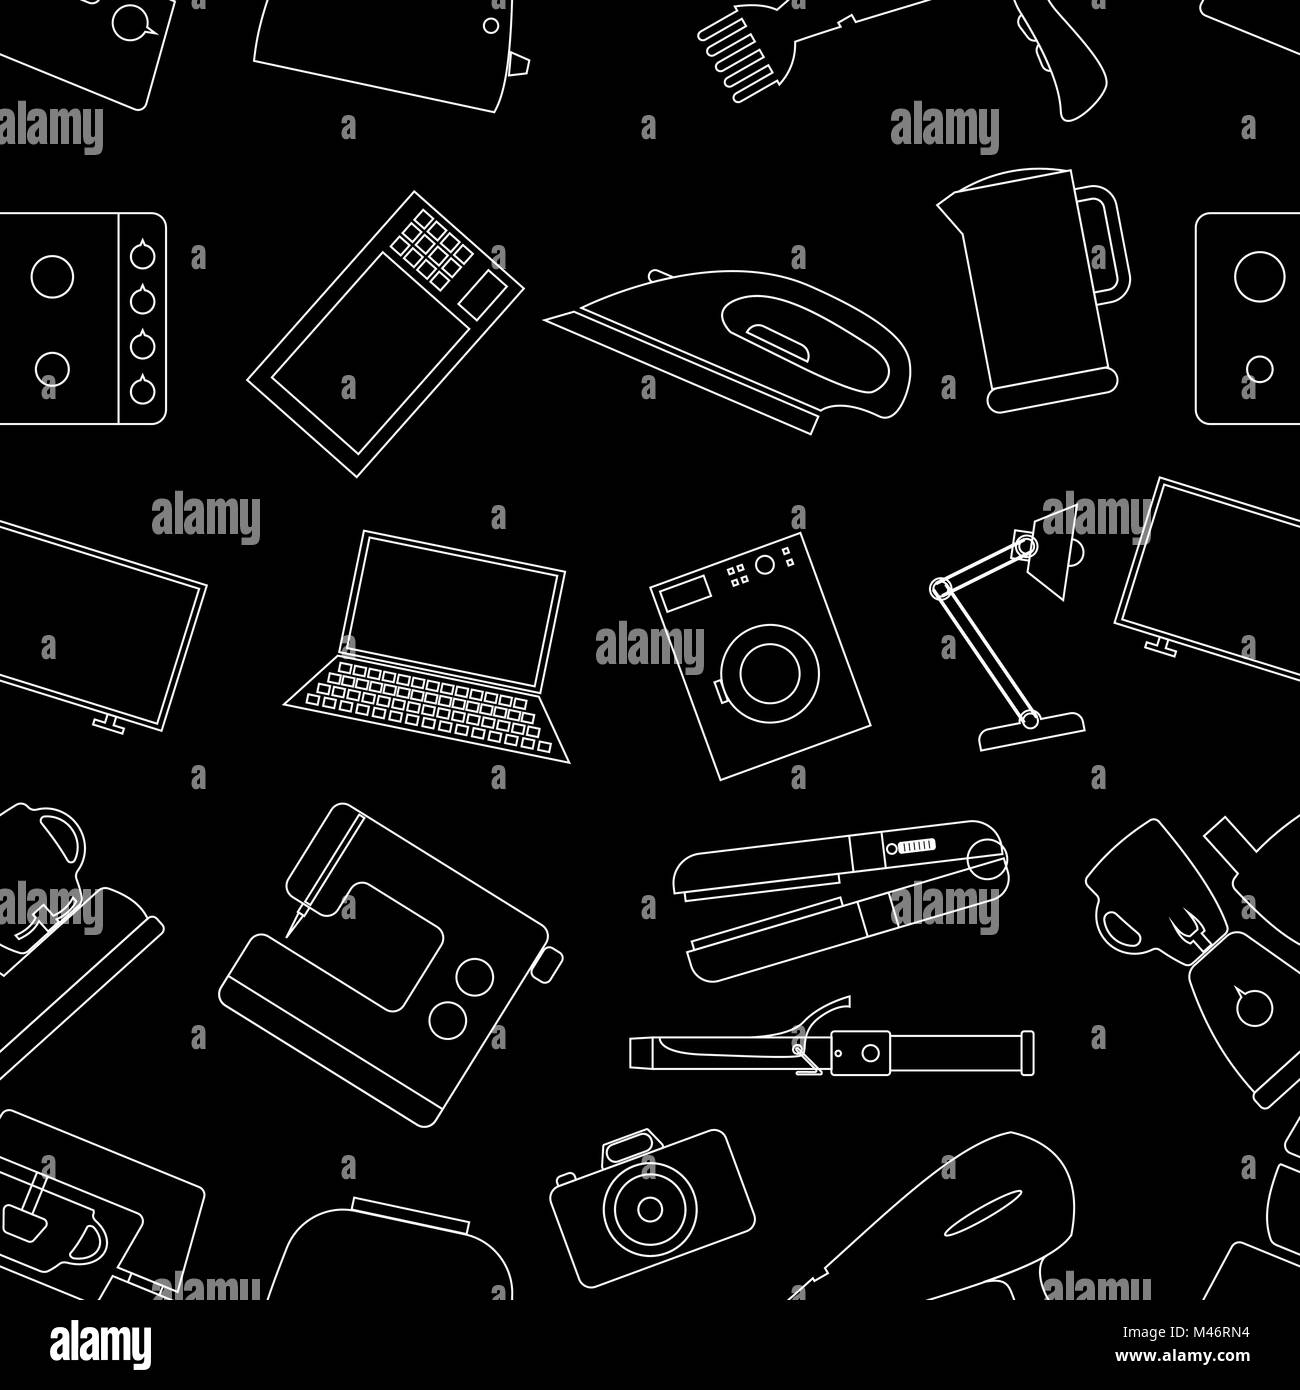 Seamless background from a set of home appliances. - Stock Image